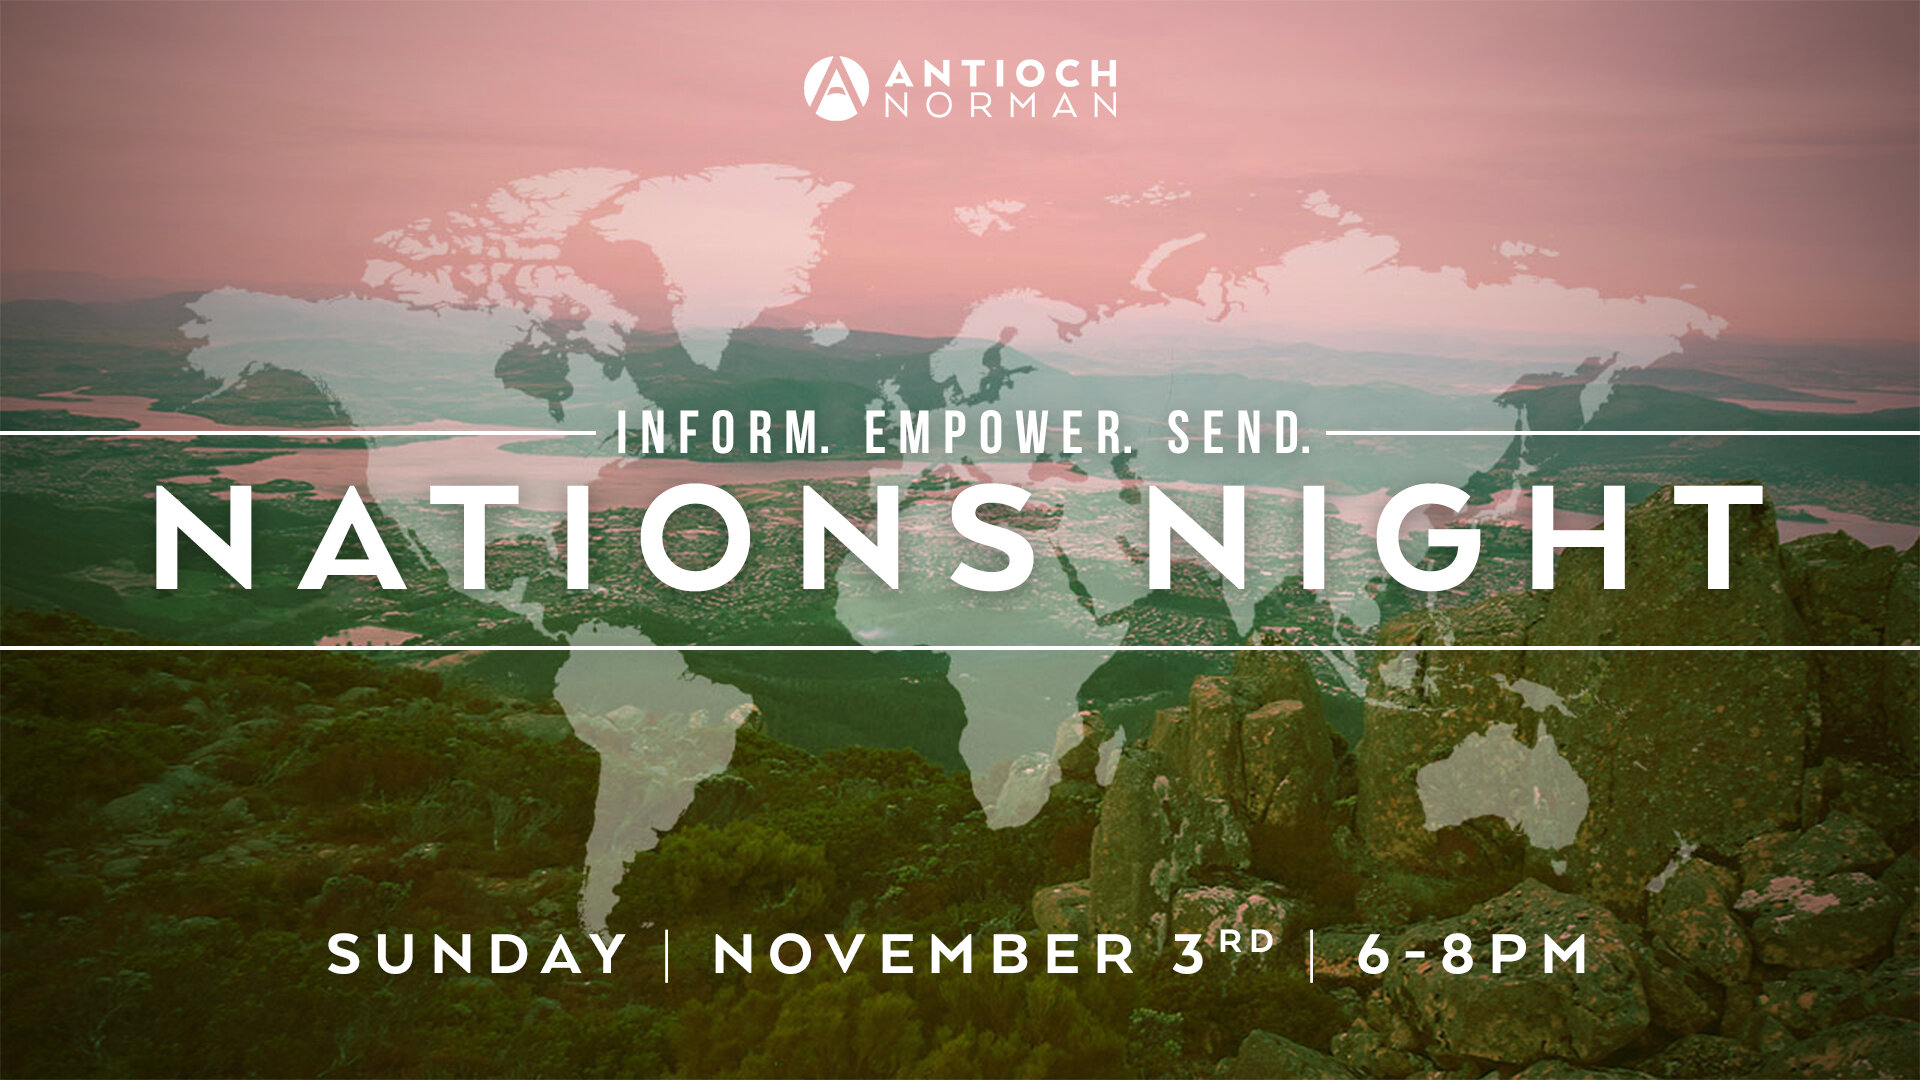 Antioch_Missions_Nations-Night_Graphic.jpg